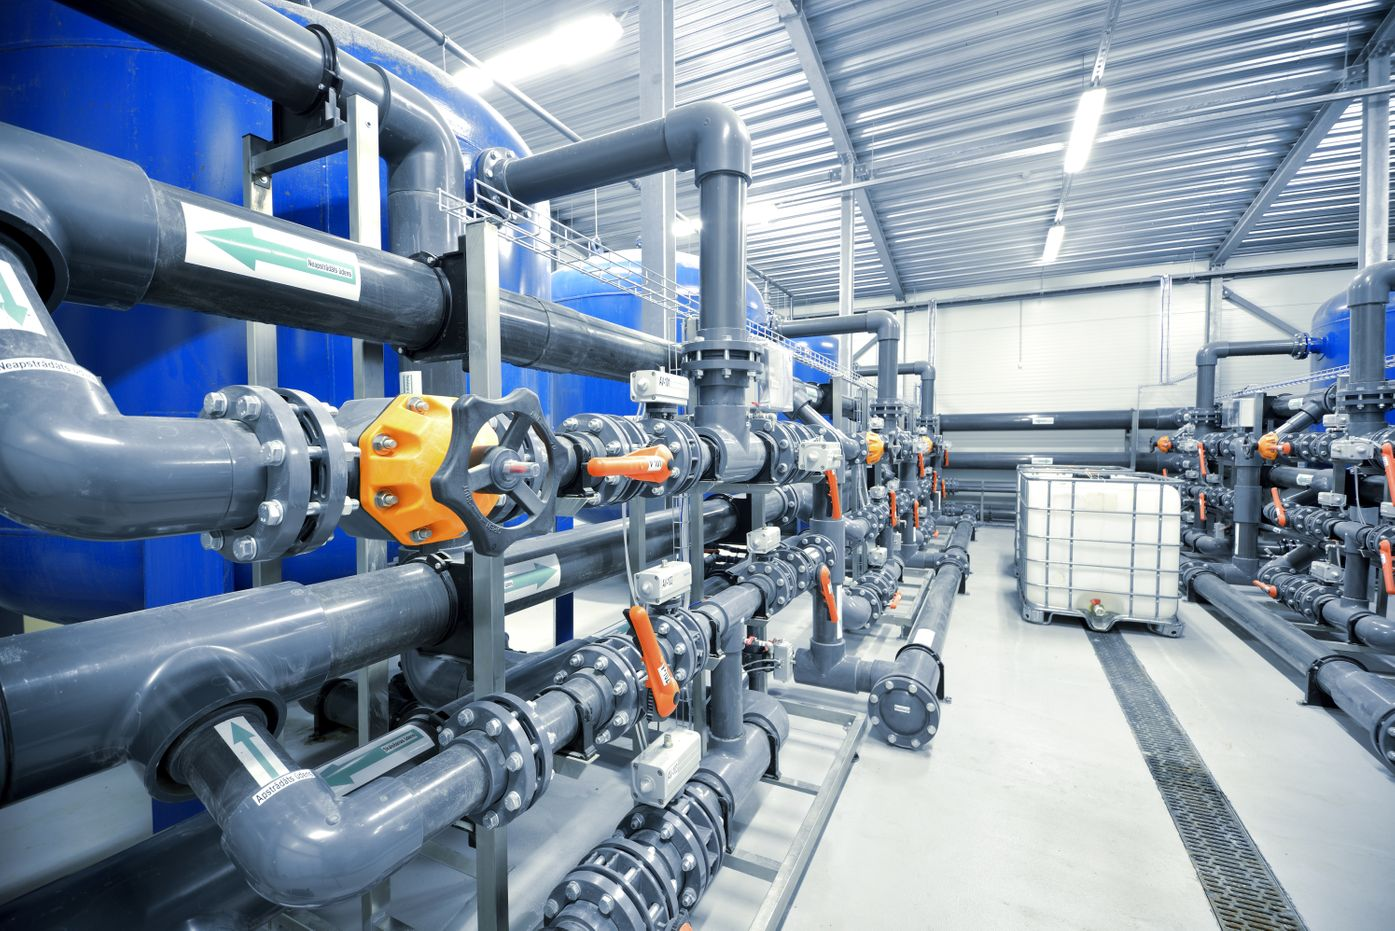 Commercial HVAC & Plumbing Services